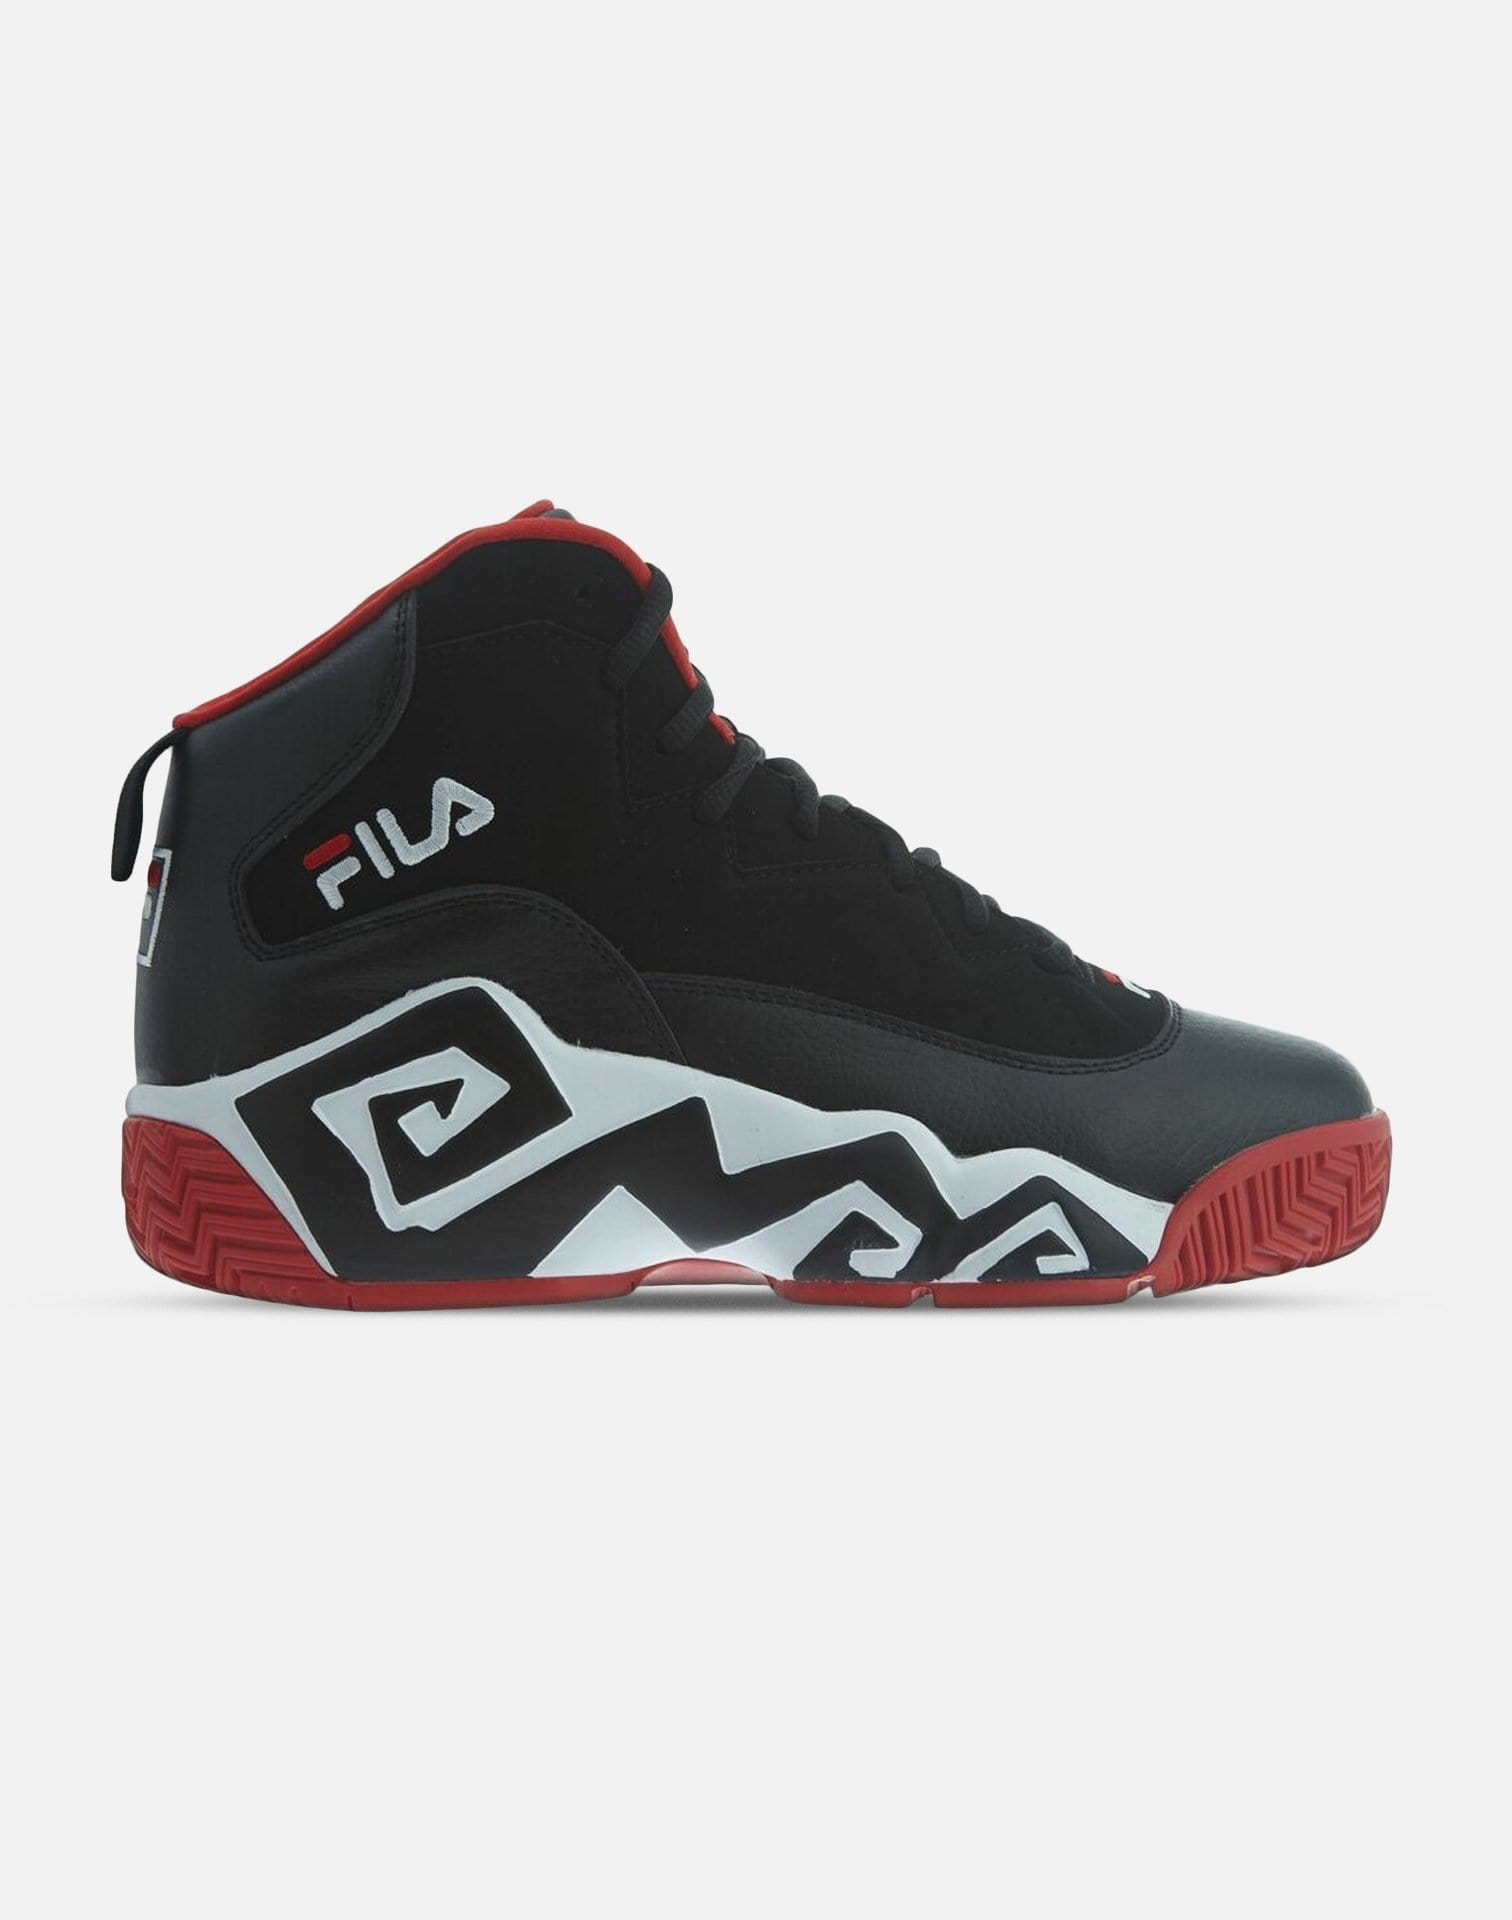 Fila Men's MB Leather Retro High Top Basketball Trainers Shoes Sneakers